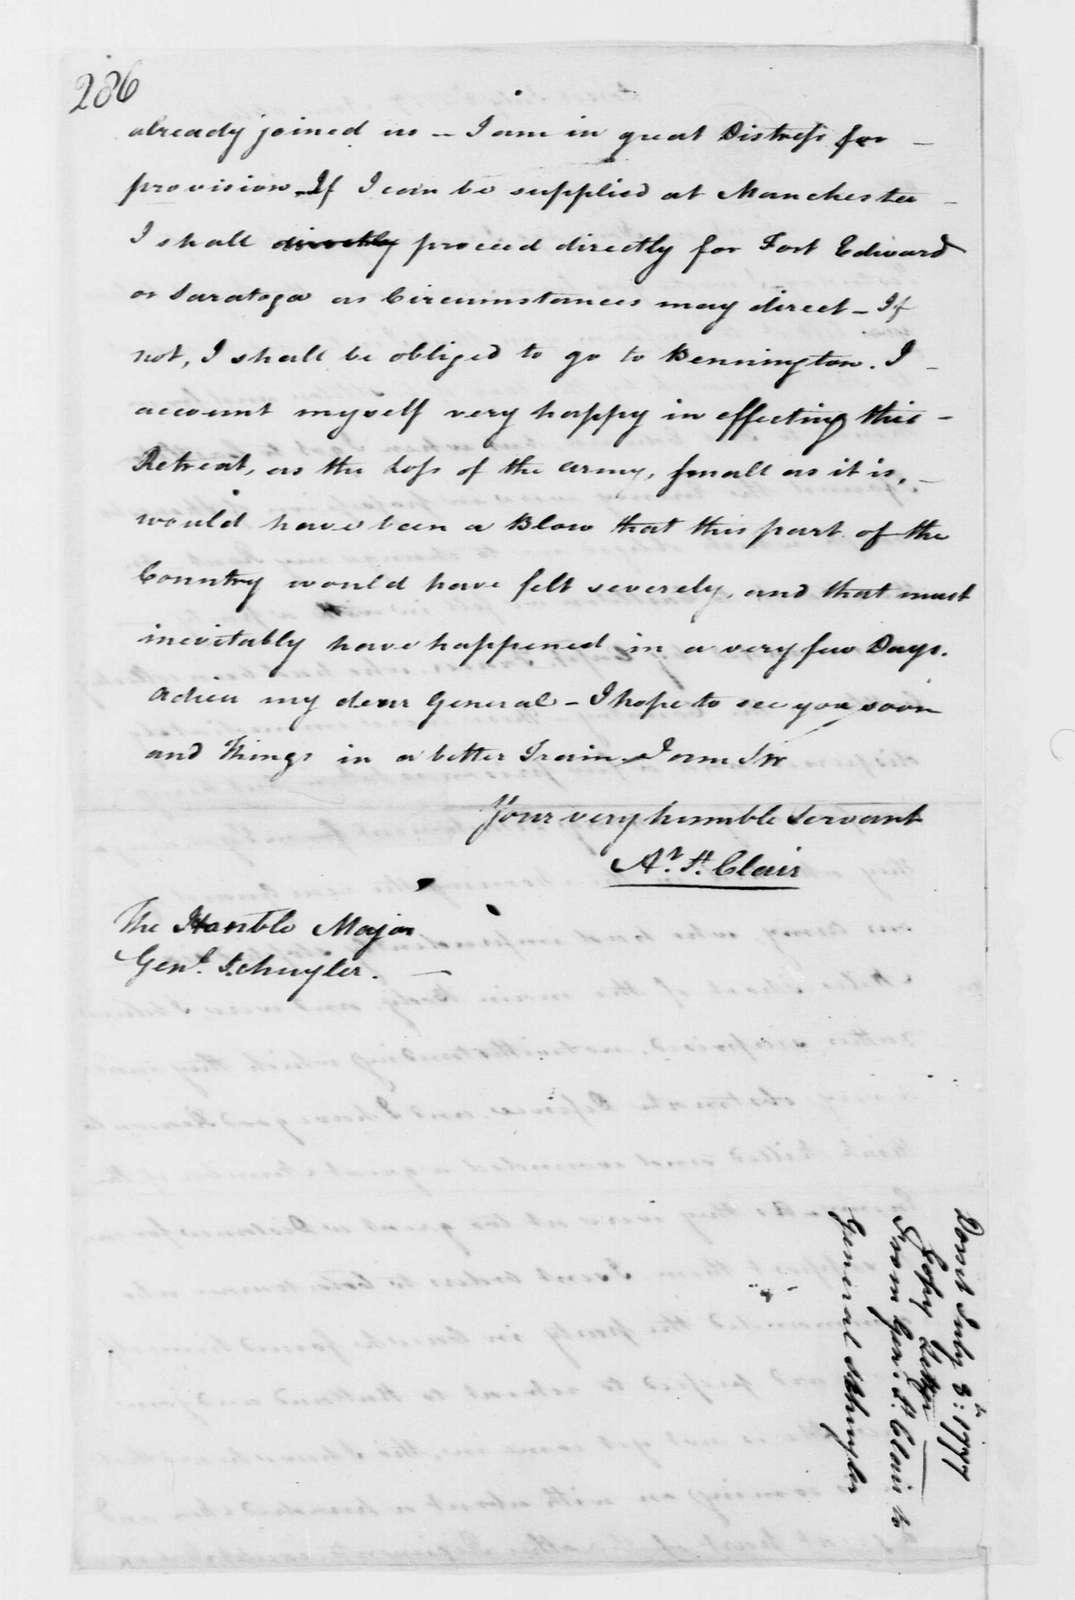 George Washington Papers, Series 4, General Correspondence: Arthur St. Clair to Philip J. Schuyler, July 8, 1777